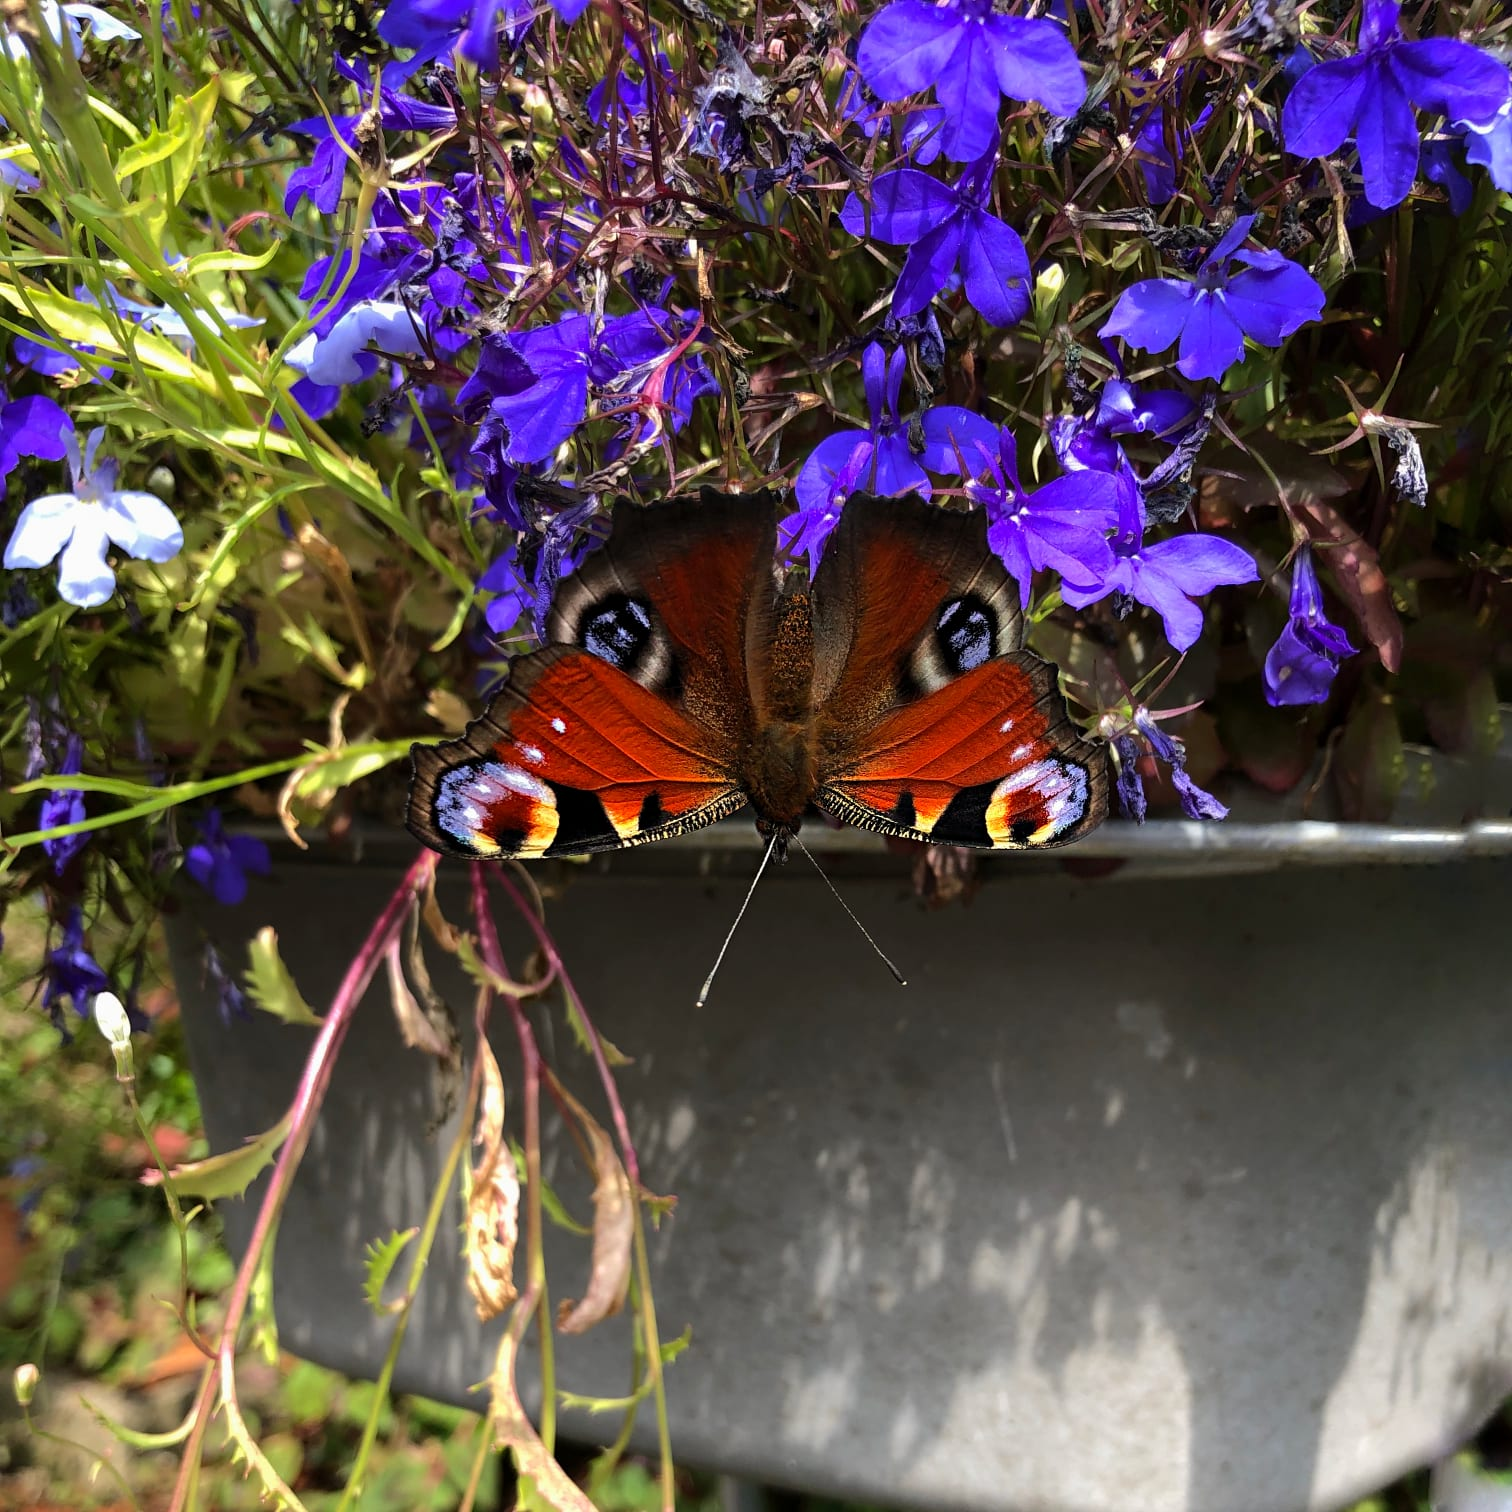 Peacock butterfly. It doesn't matter this was a basin, it's filled with flowers now